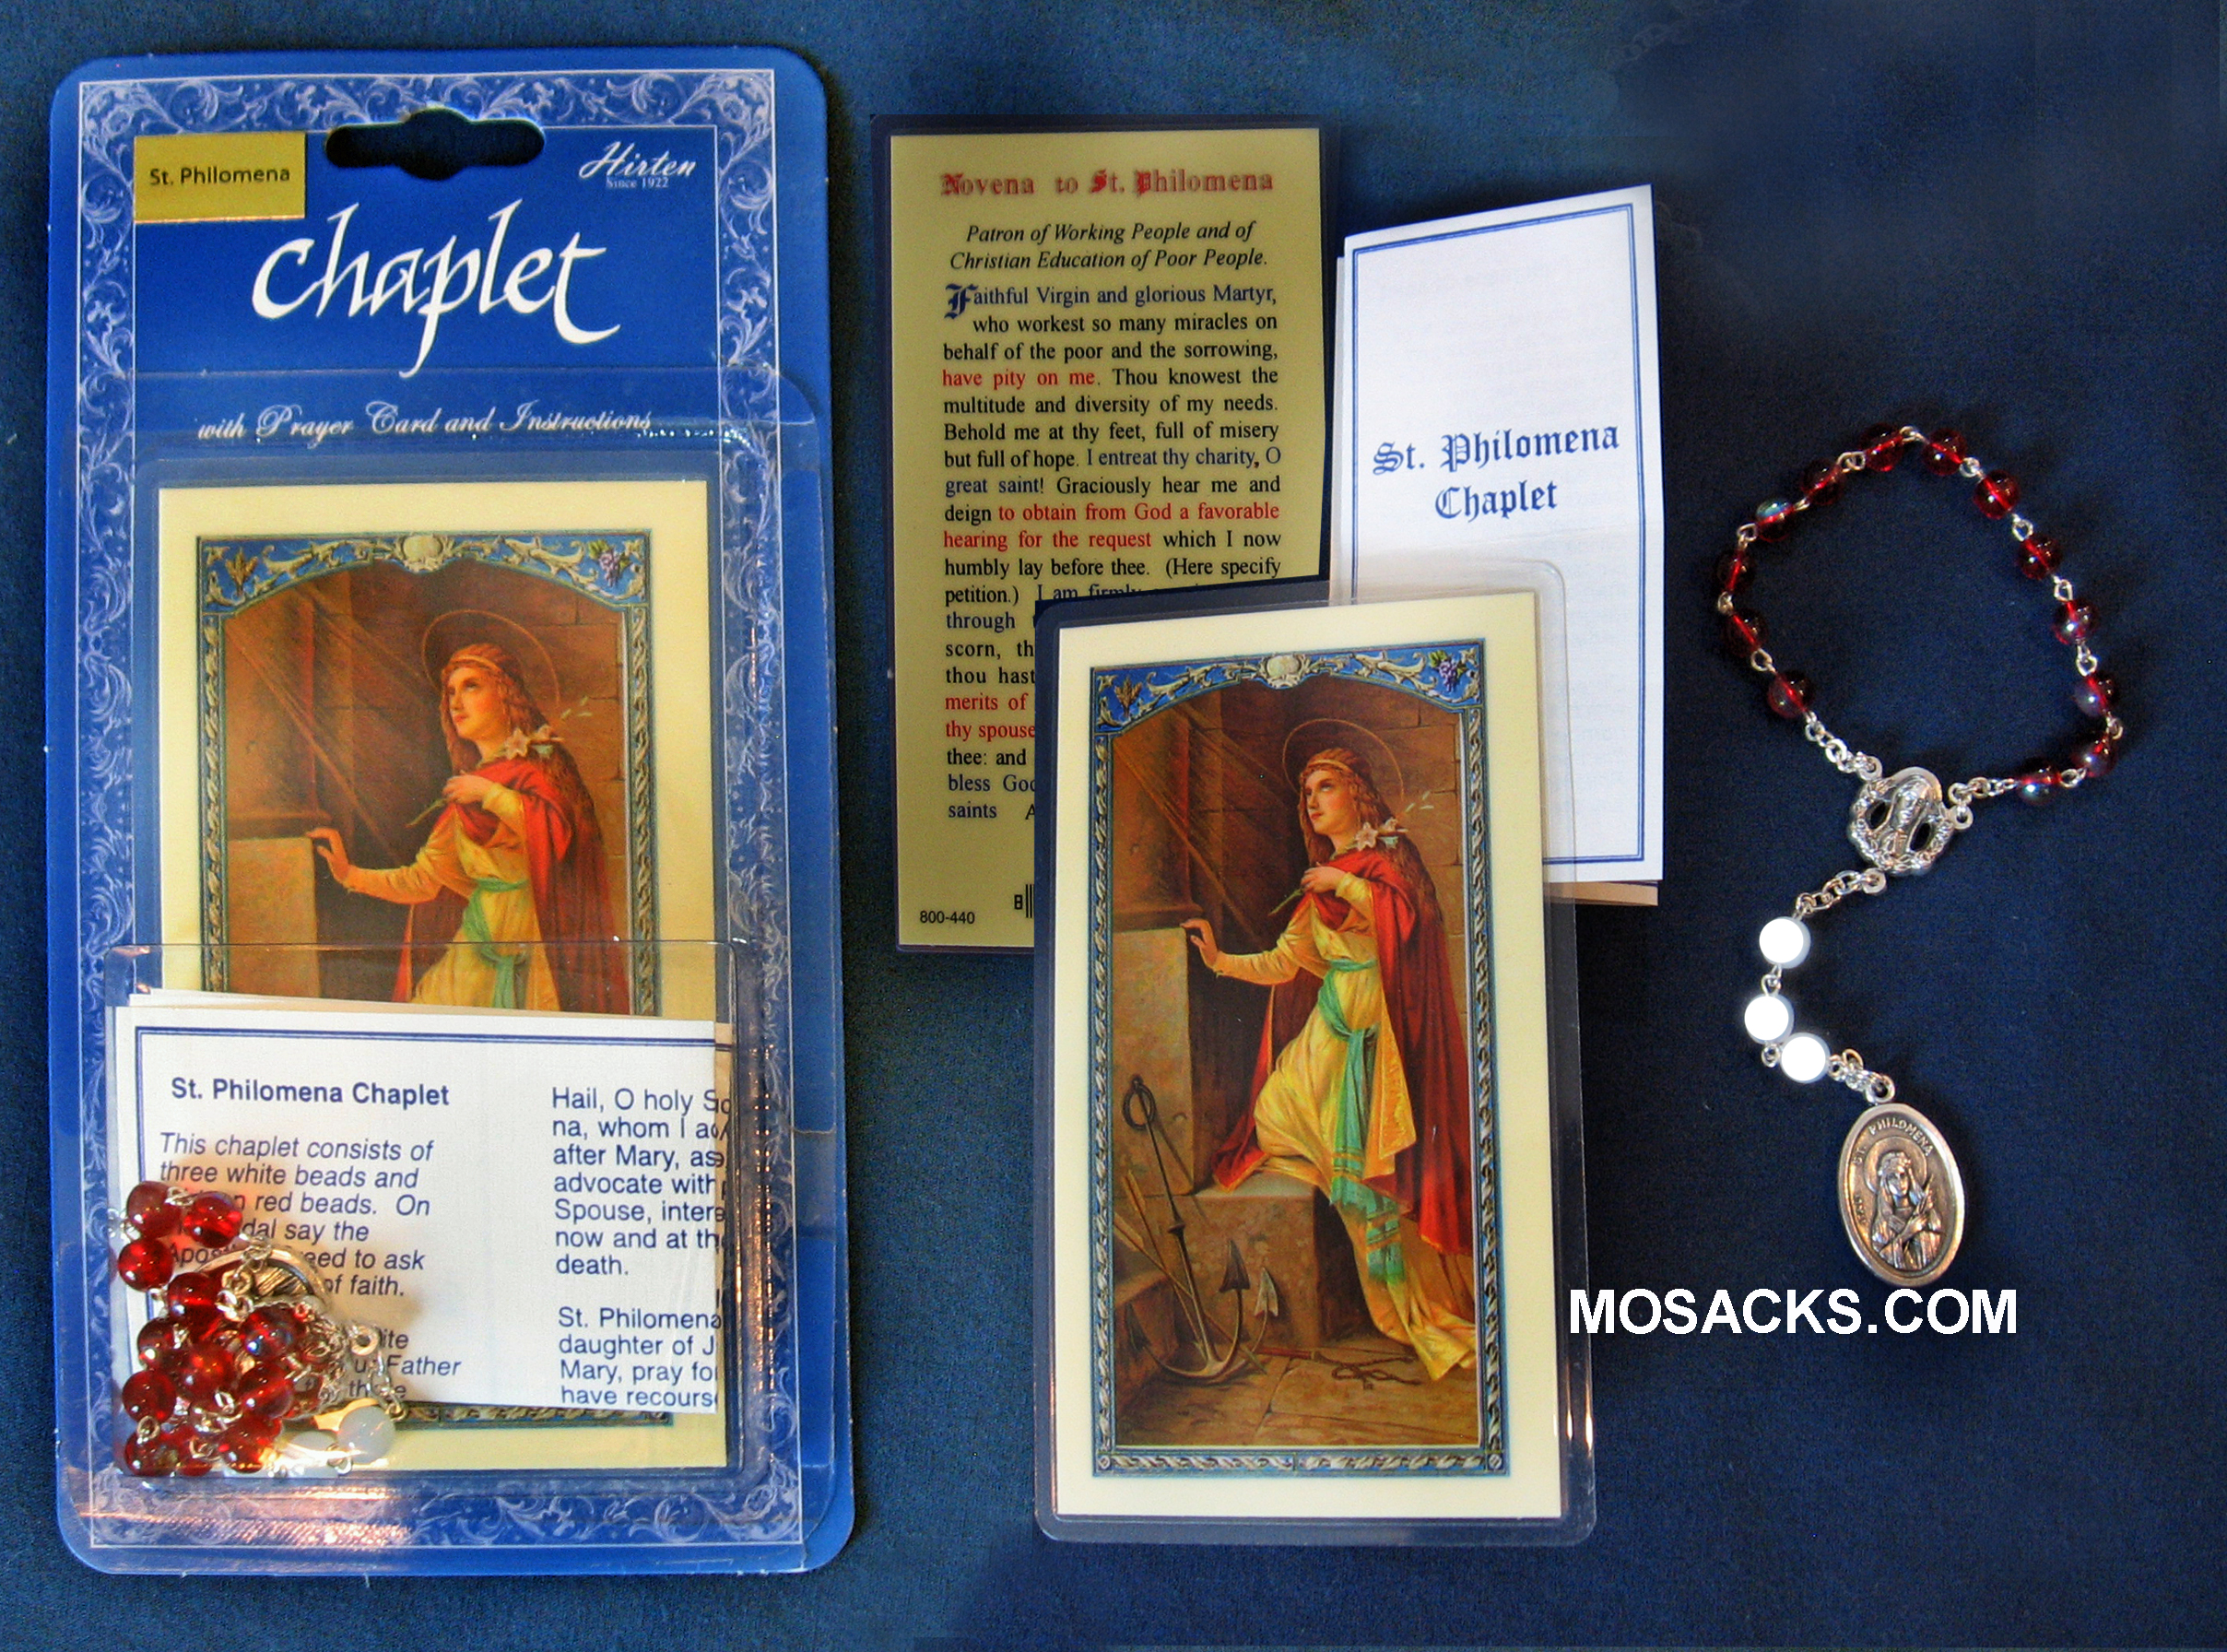 St. Philomena Chaplet and Prayer Card, 01098